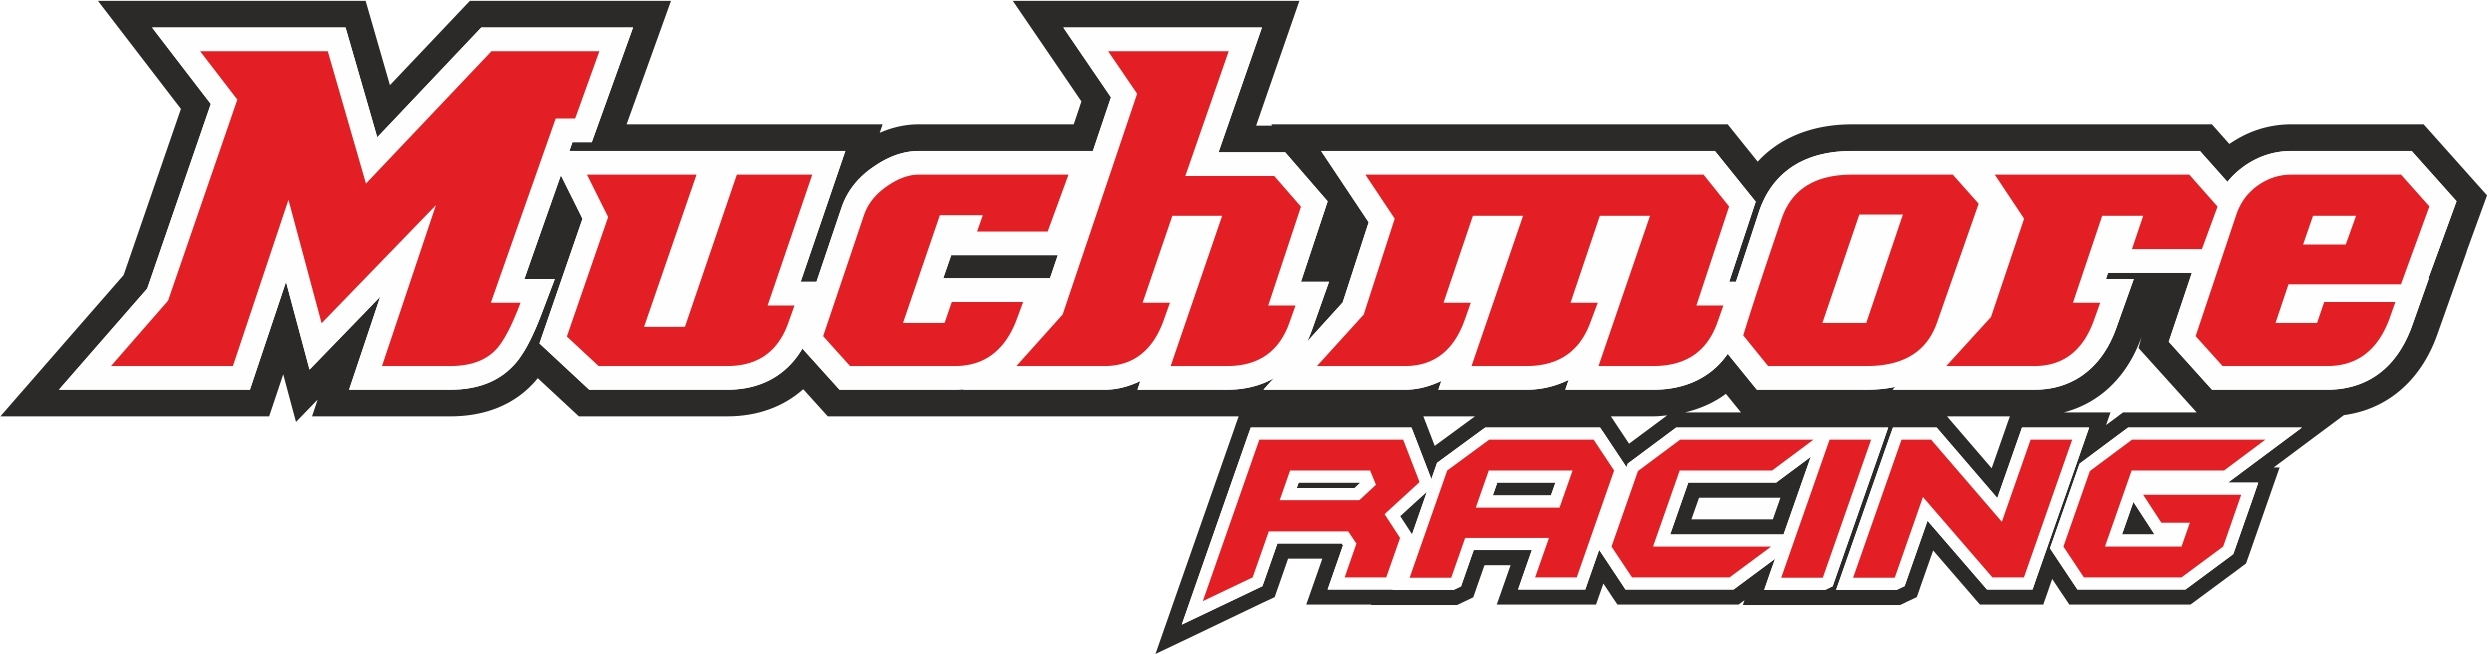 Image result for muchmore racing logo